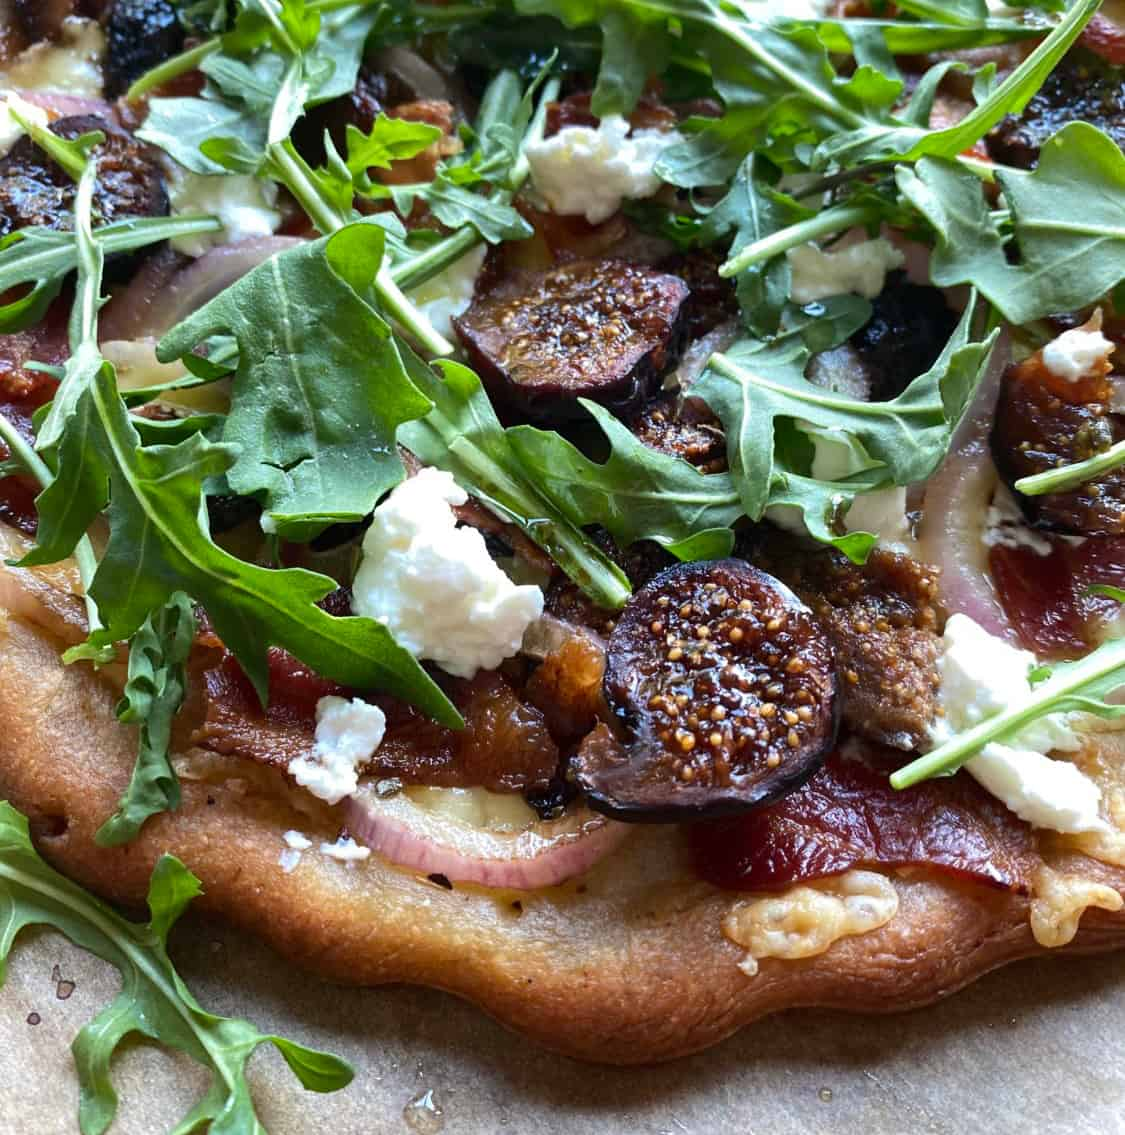 Homemade Pizza with Figs and Arugula